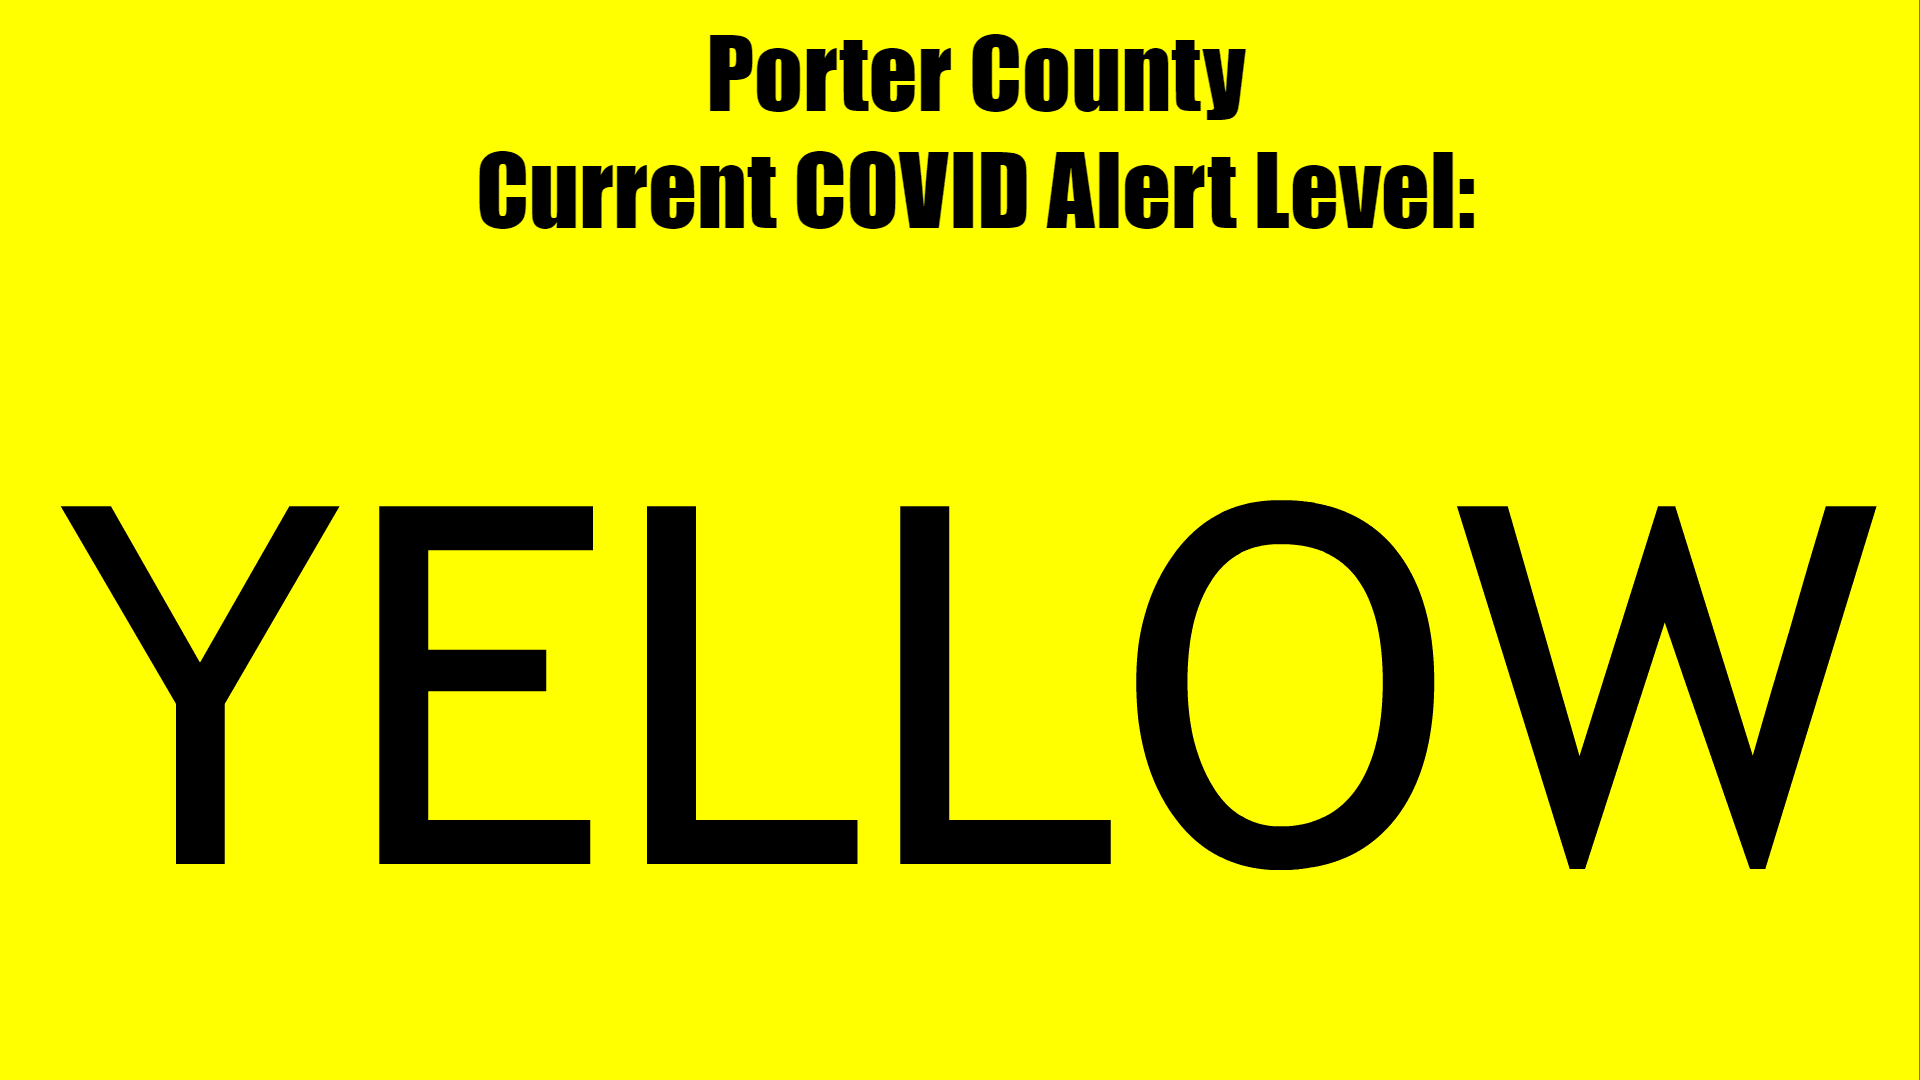 COVID ALERT LEVEL YELLOW page banner